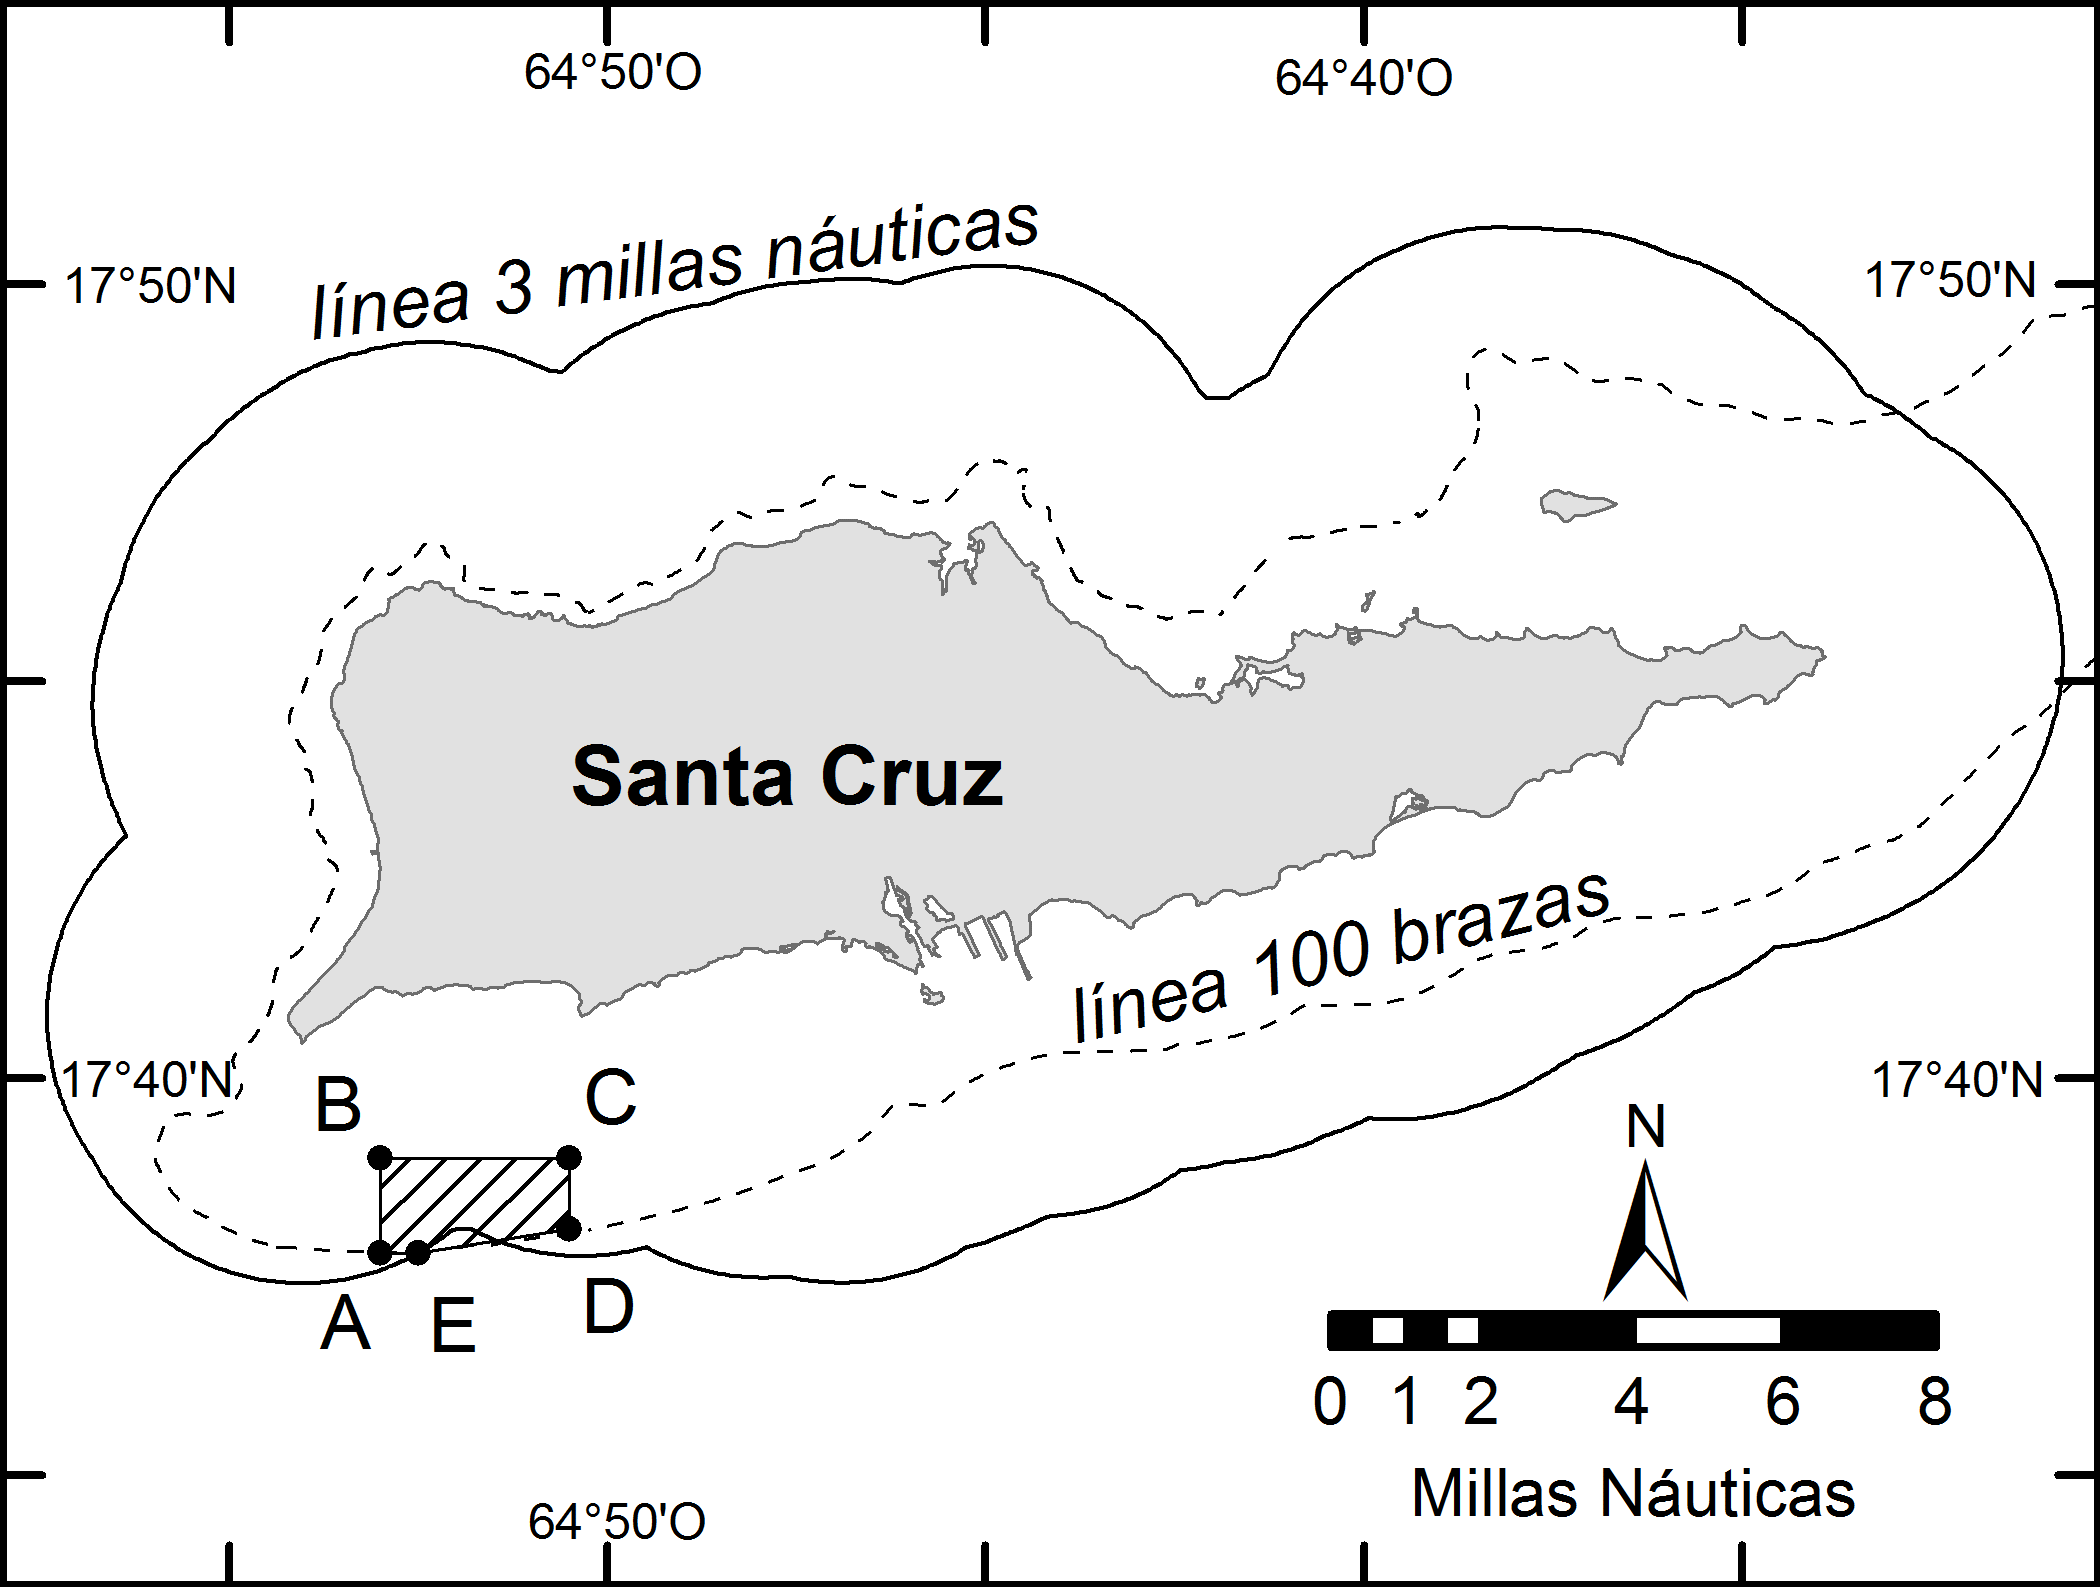 Mutton snapper spawning aggregation management area located south of St. Croix, U.S. Virgin Islands.